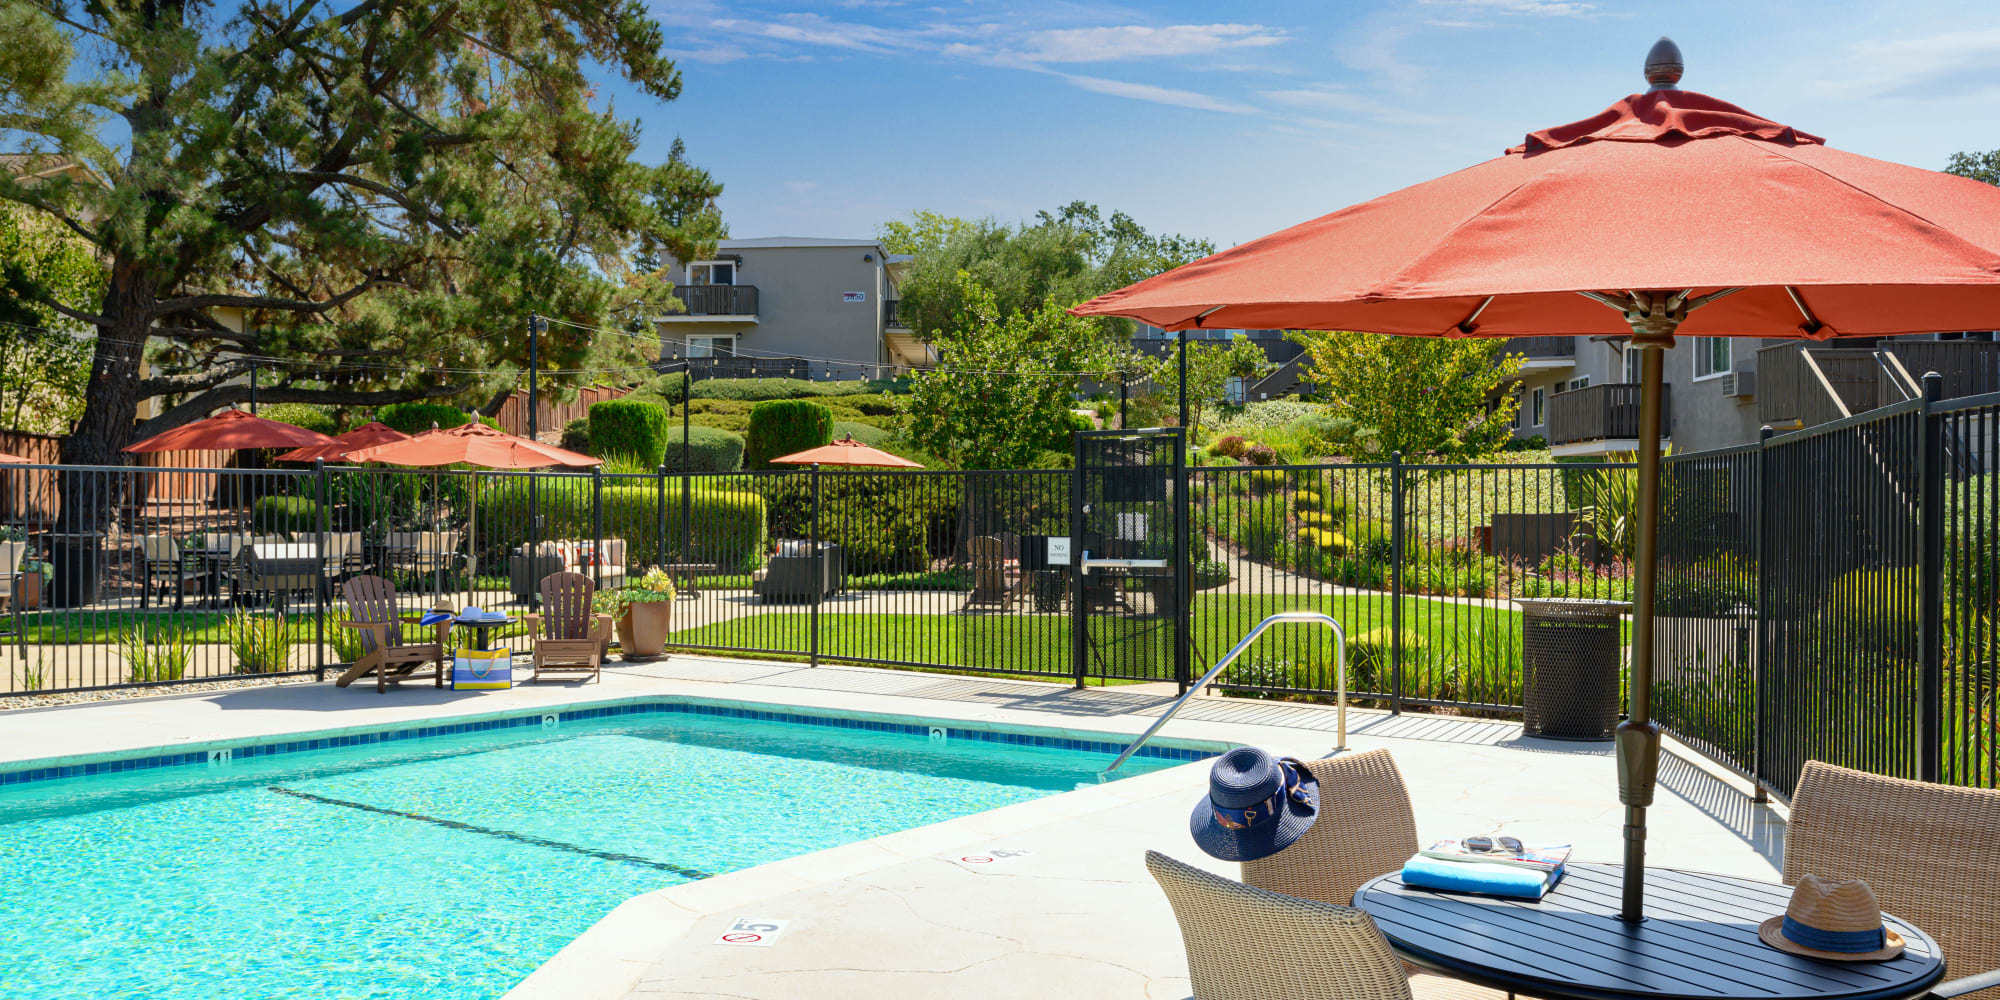 Resort-style swimming pool with shaded seating nearby at Pleasanton Heights in Pleasanton, California